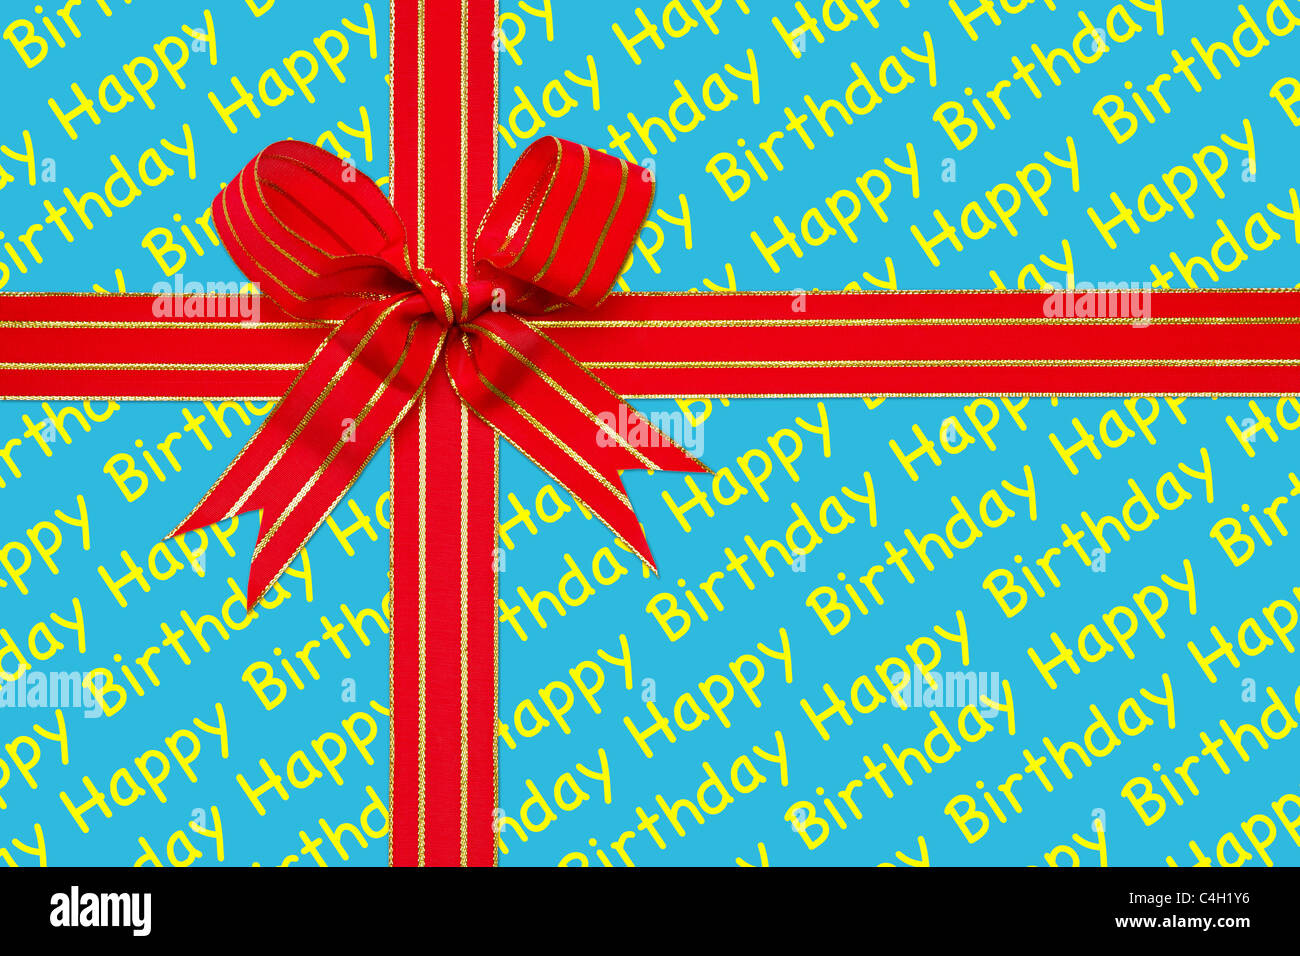 Photo of a red and gold ribbon tied in a bow on Happy Birthday wrapping paper. - Stock Image